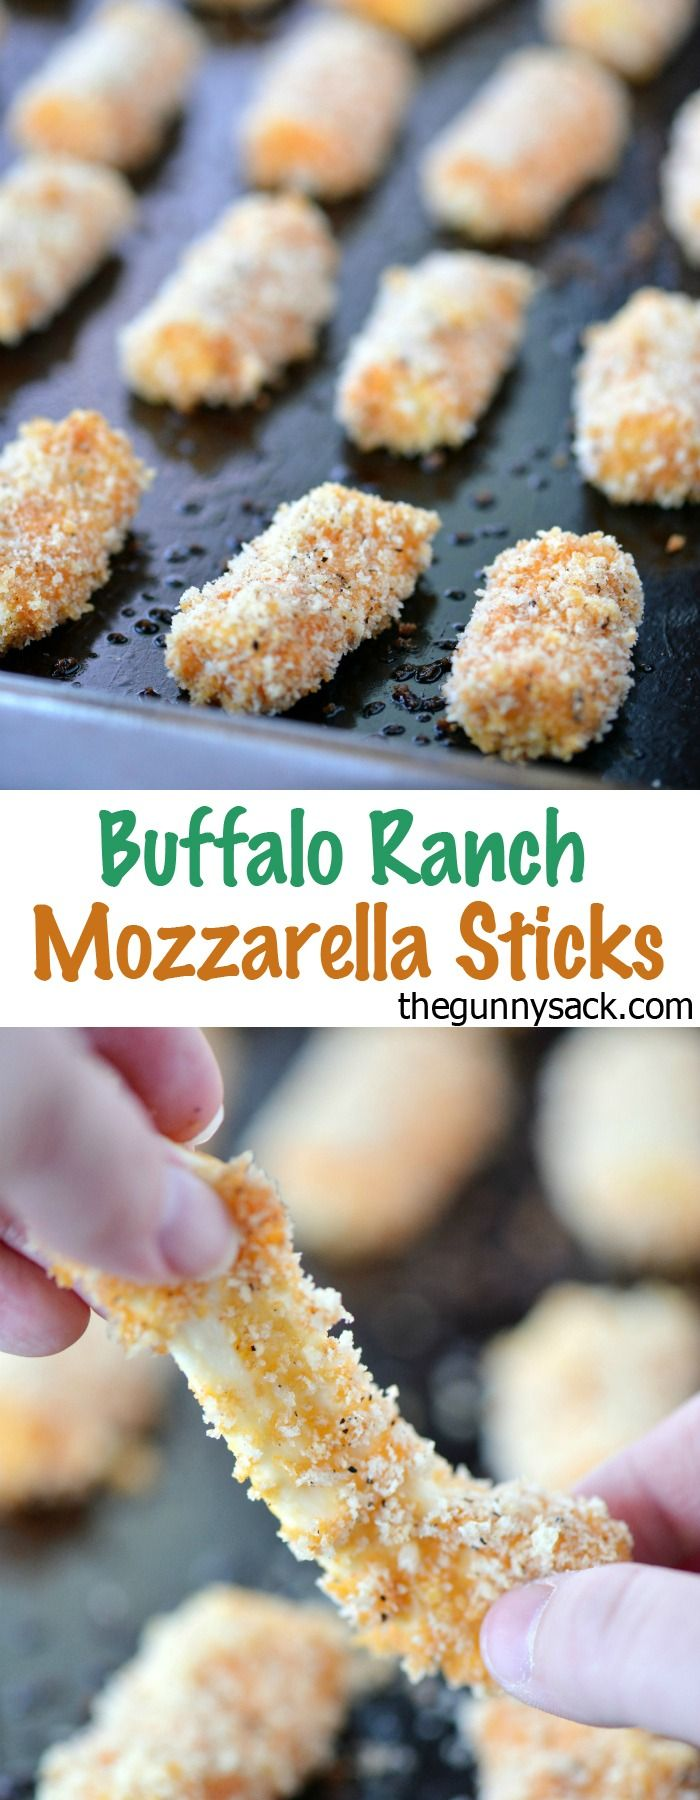 Buffalo Ranch Mozzarella Sticks are sure to be a WINNER at any party!